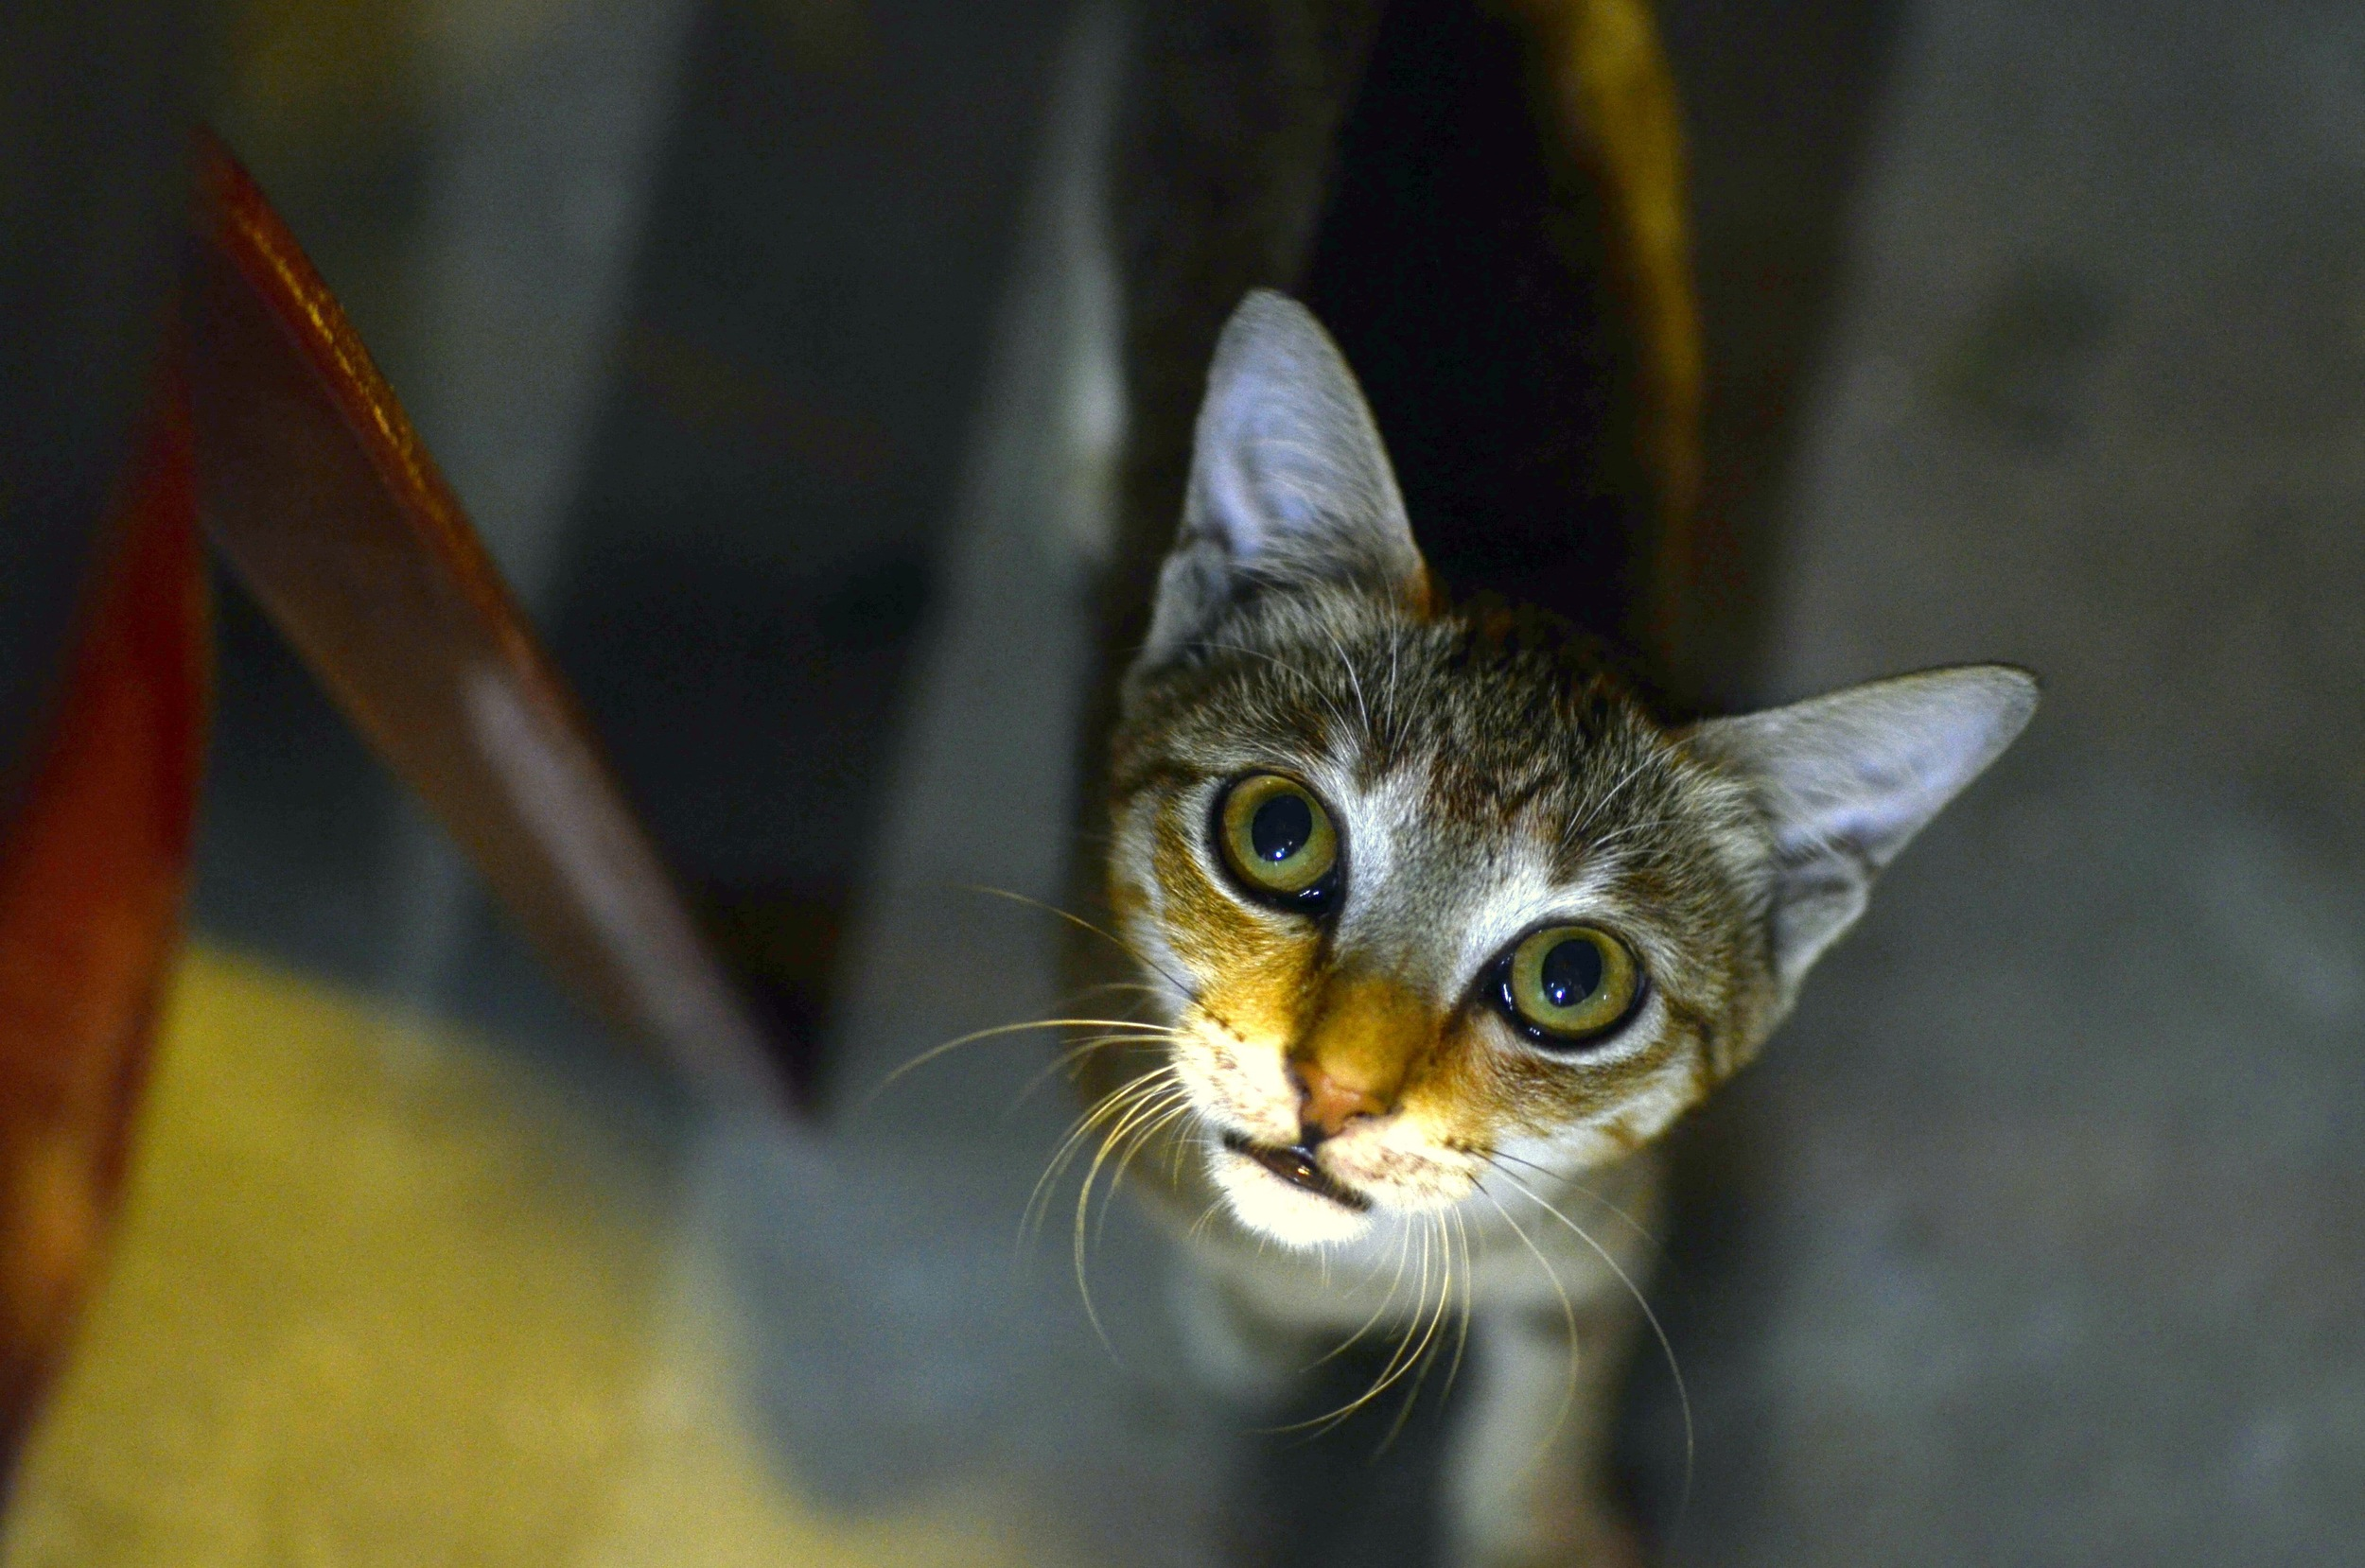 Sweet kitten begging for scraps. There are stray animals everywhere in Vietnam.